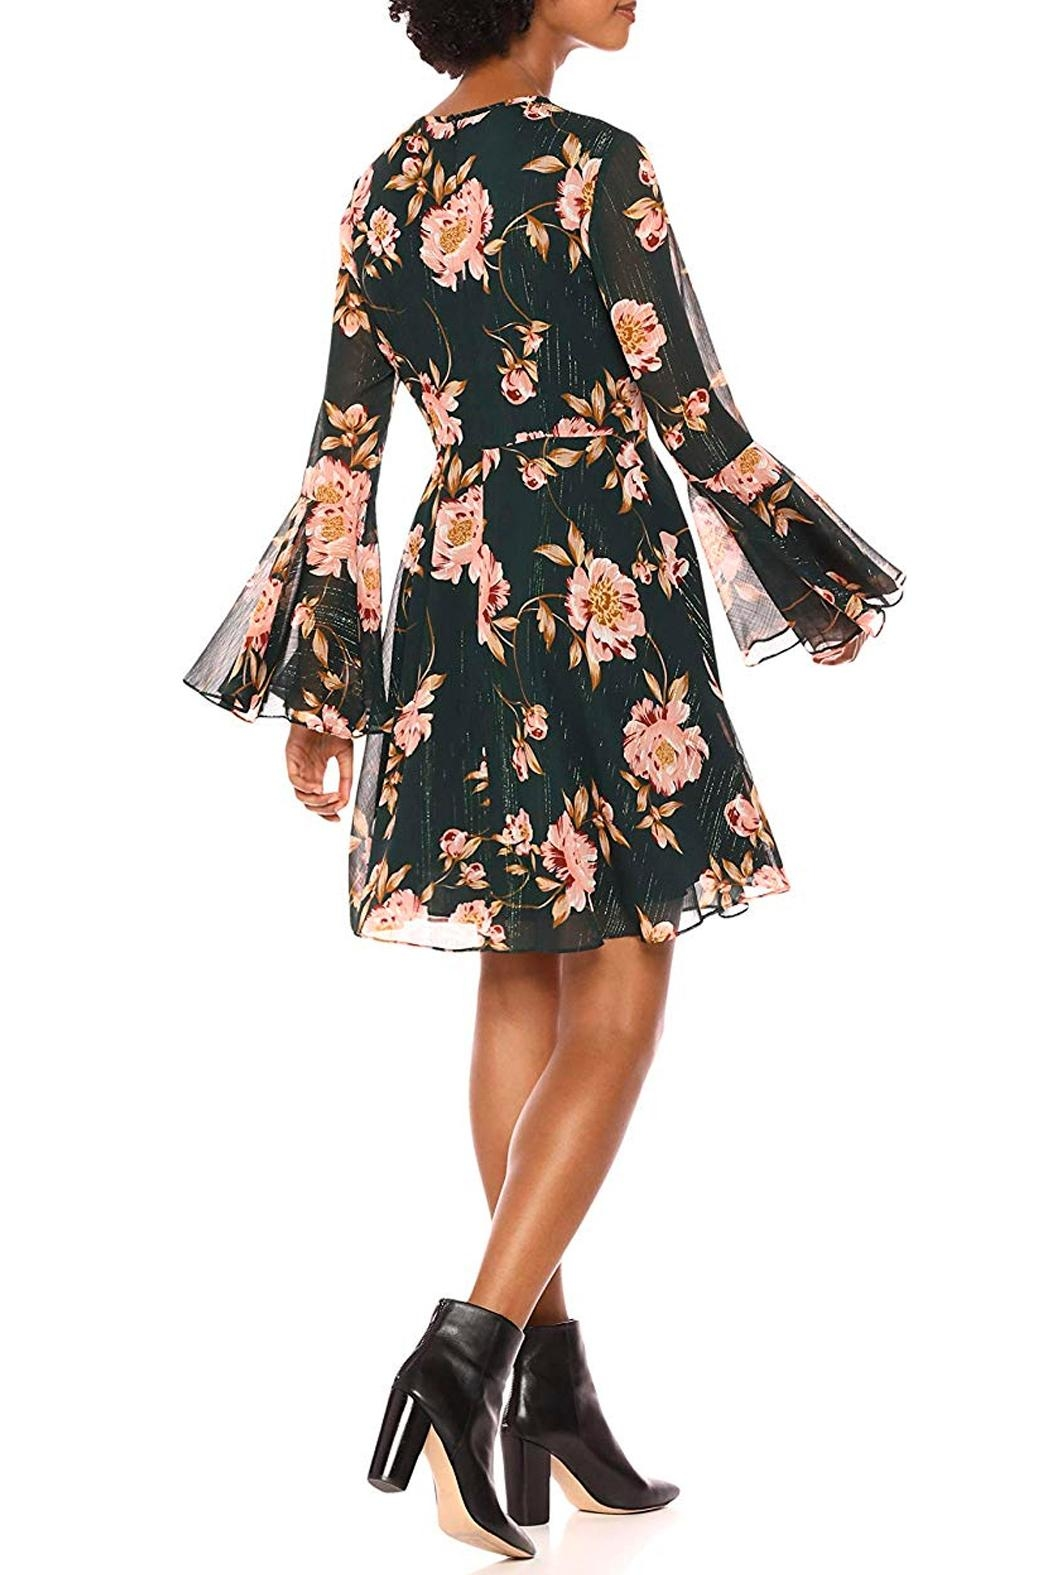 Donna Morgan Floral Bell-Sleeve Chiffon-Dress - Front Full Image